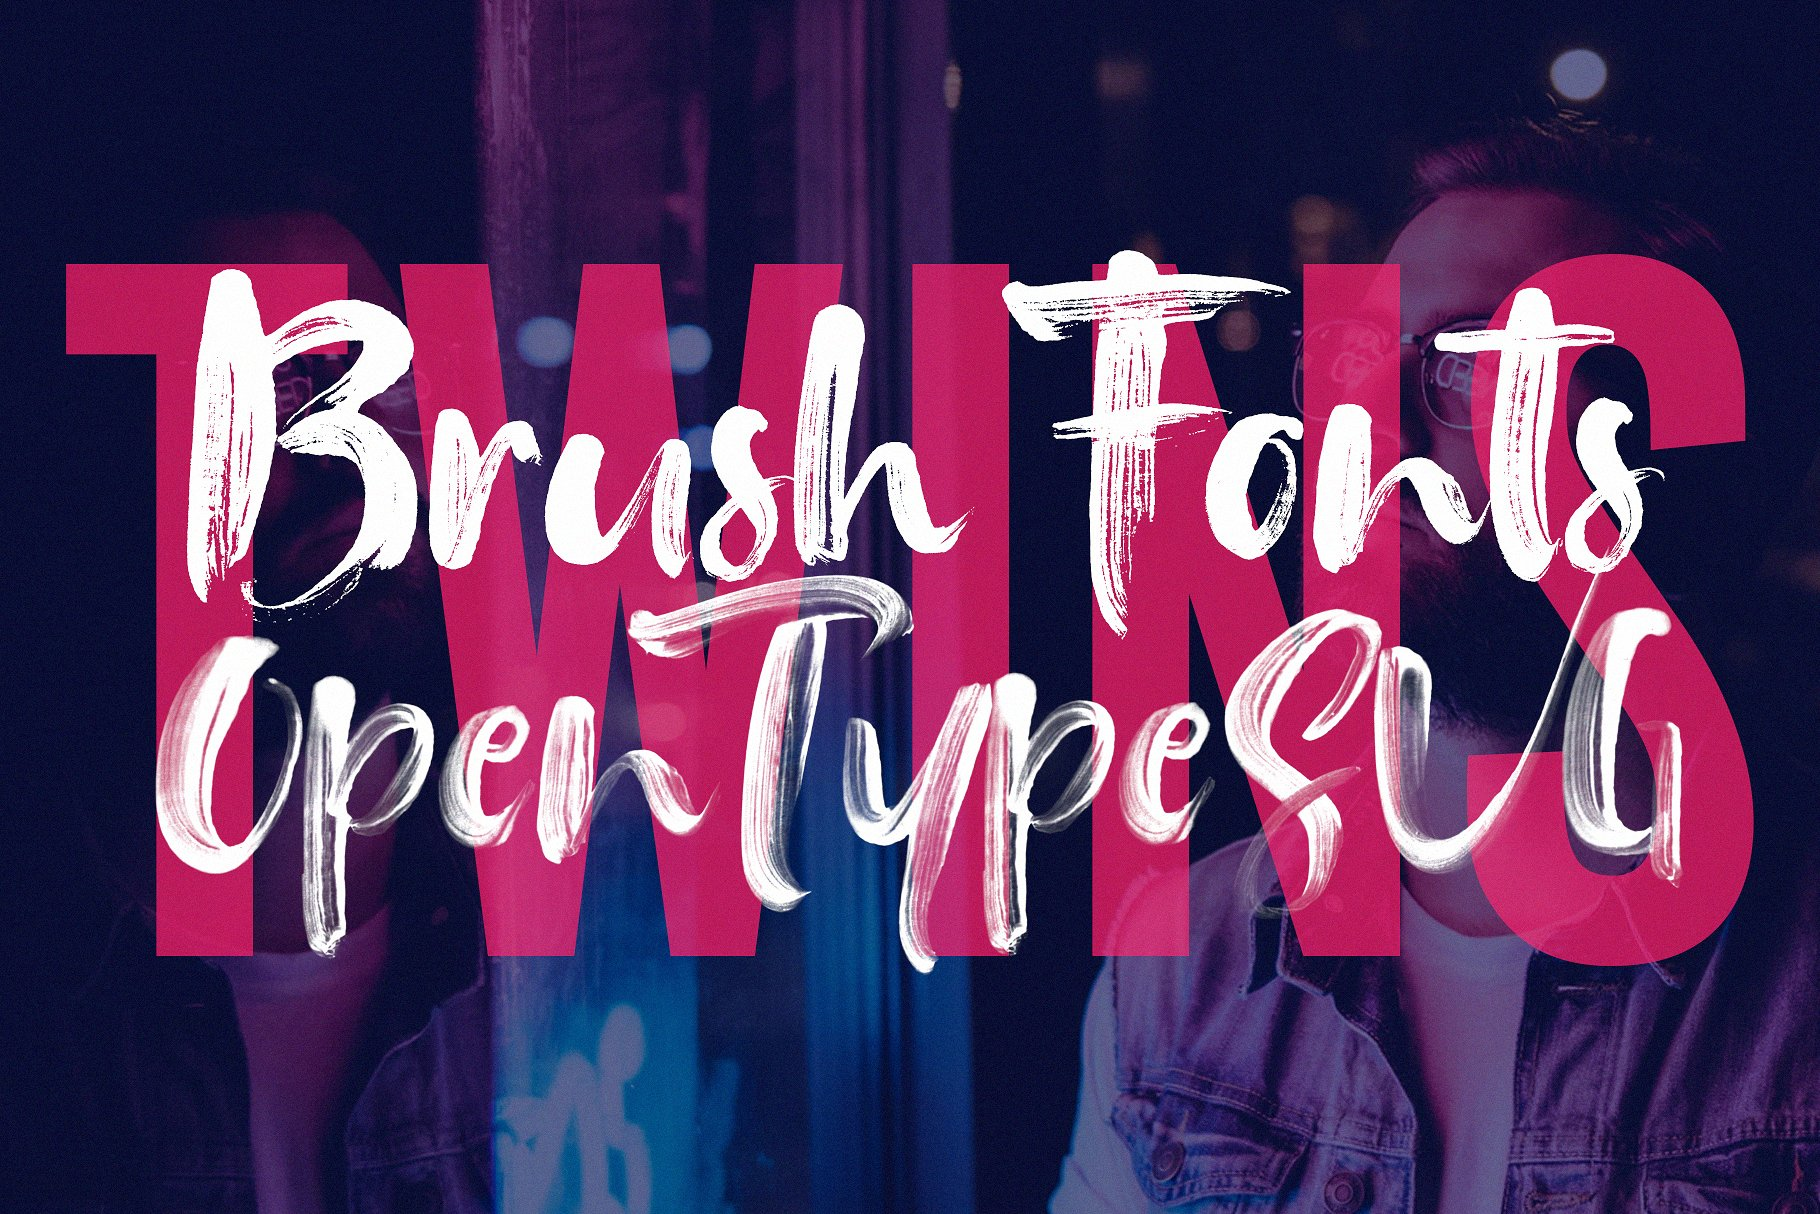 Tanktop SVG & Brush Fonts example image 8